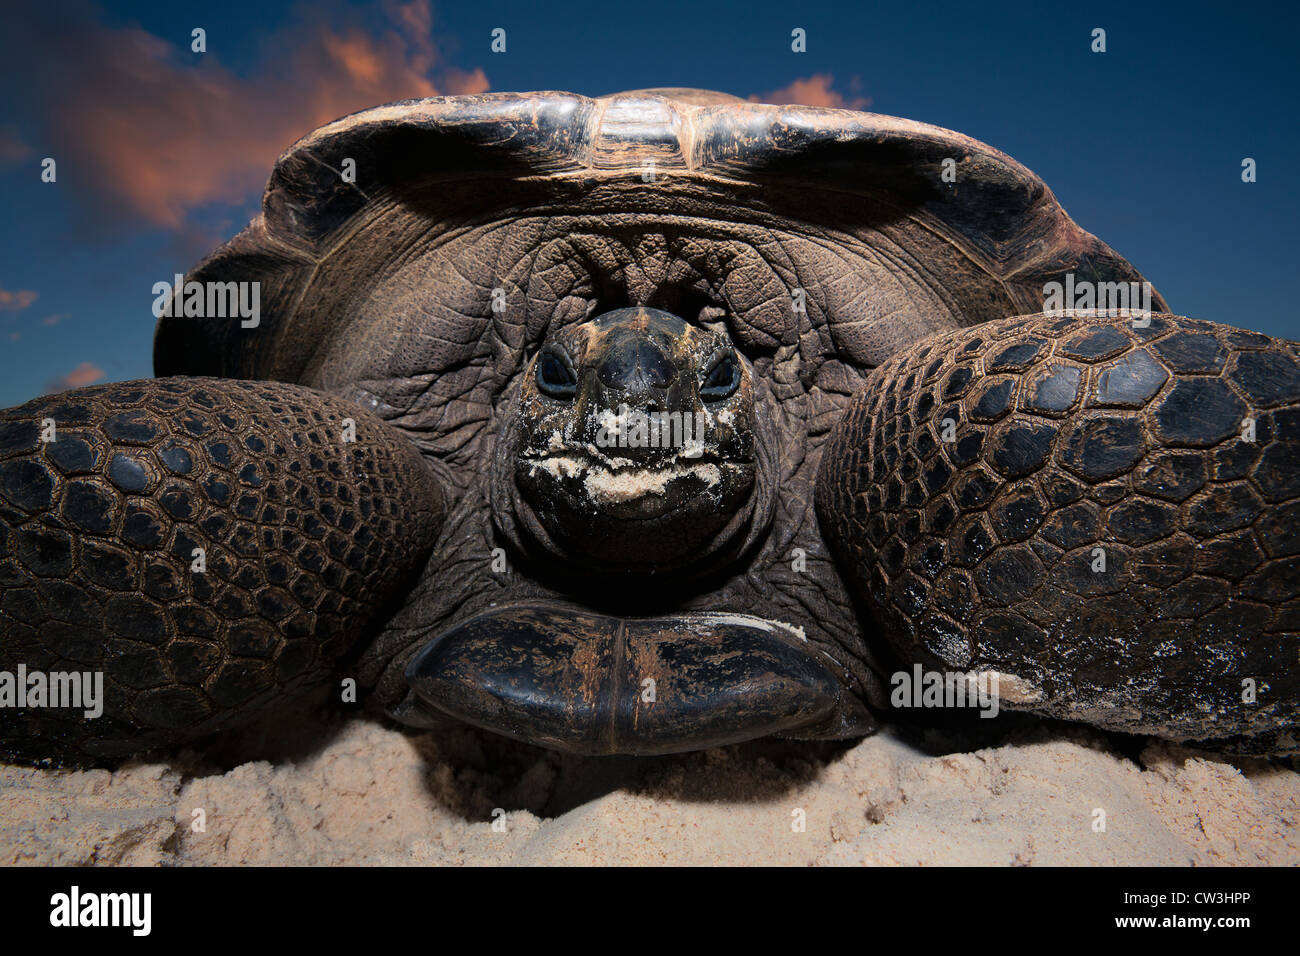 Giant tortoise (Geochelone gigantea). Vulnerable species. Dist. Seychelles islands. - Stock Image